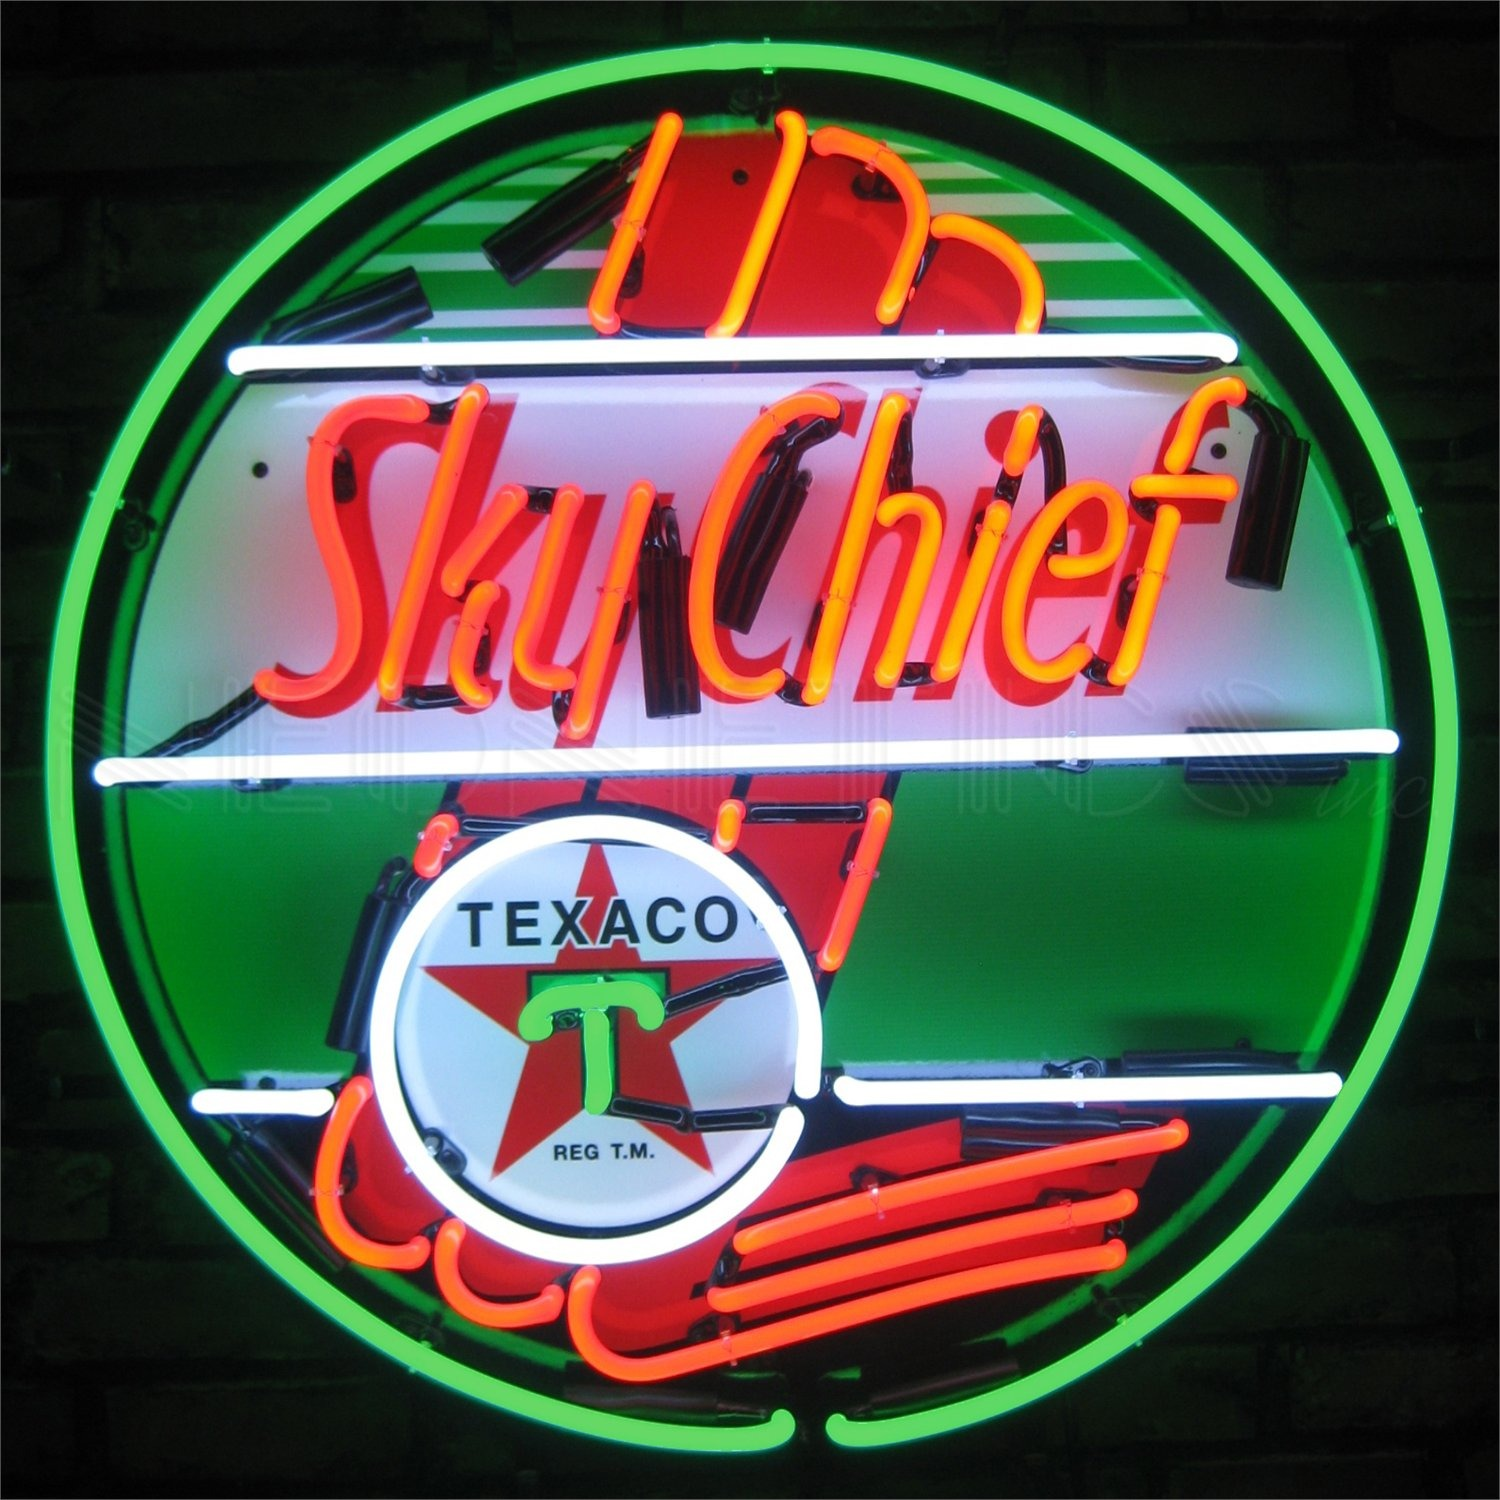 New-2018-Texaco-Sky-Chief